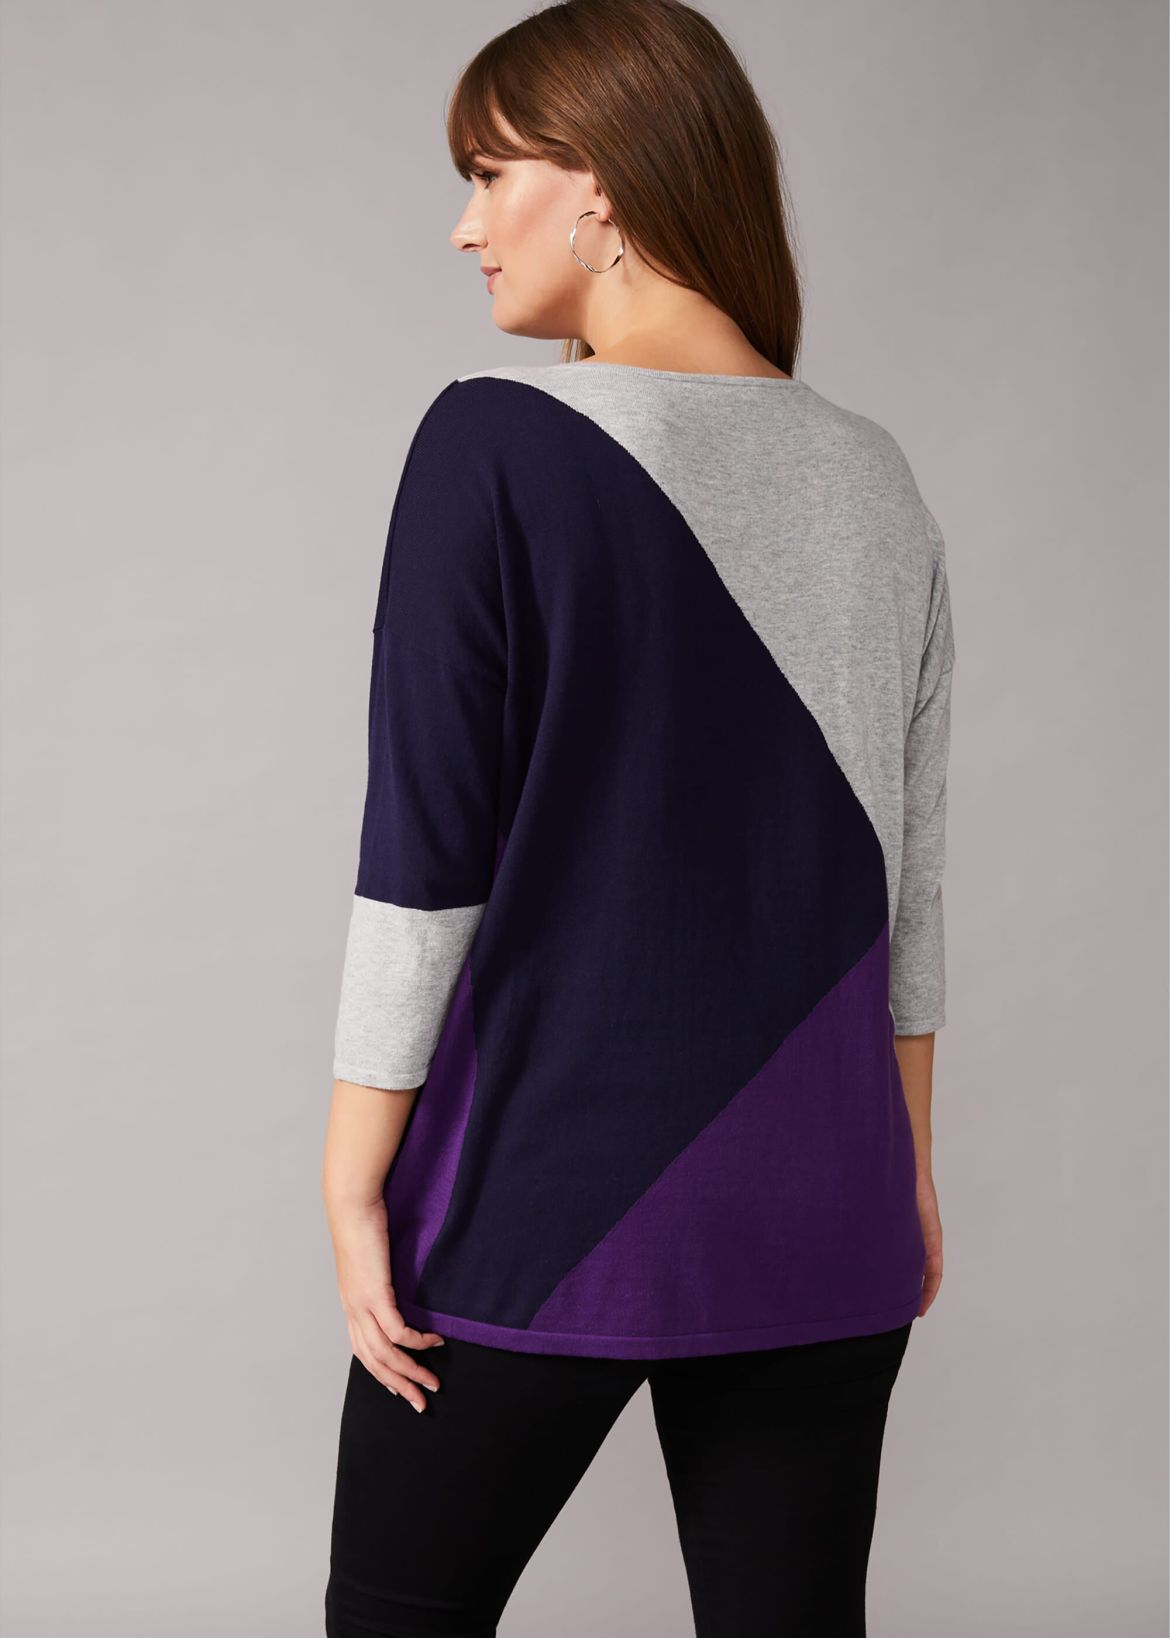 Kitty Colour Block Knit Top